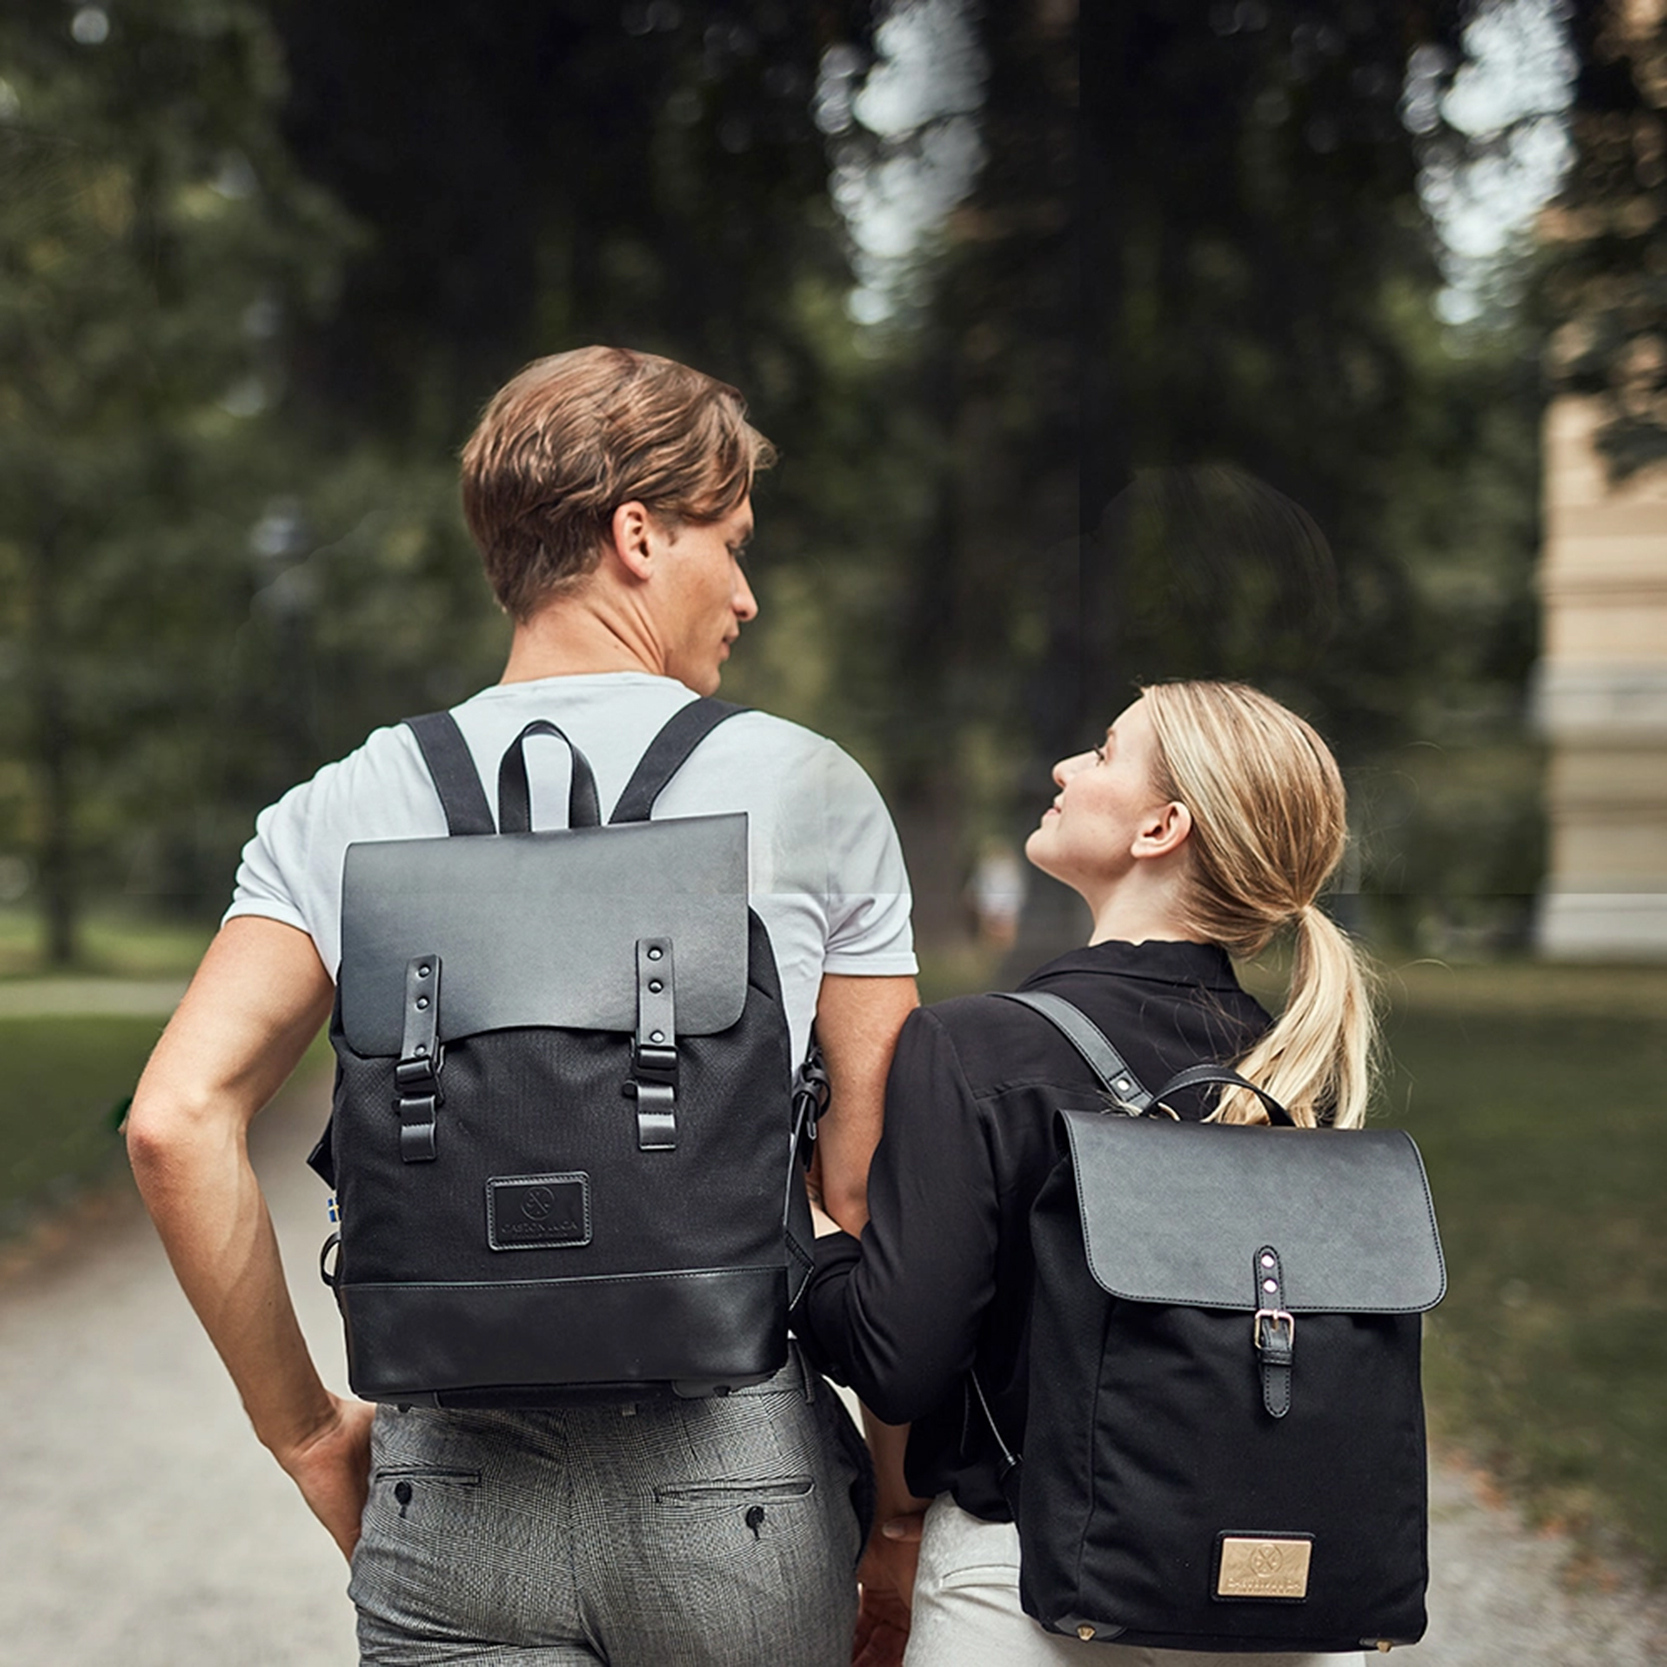 The Different Uses For a Laptop Backpack